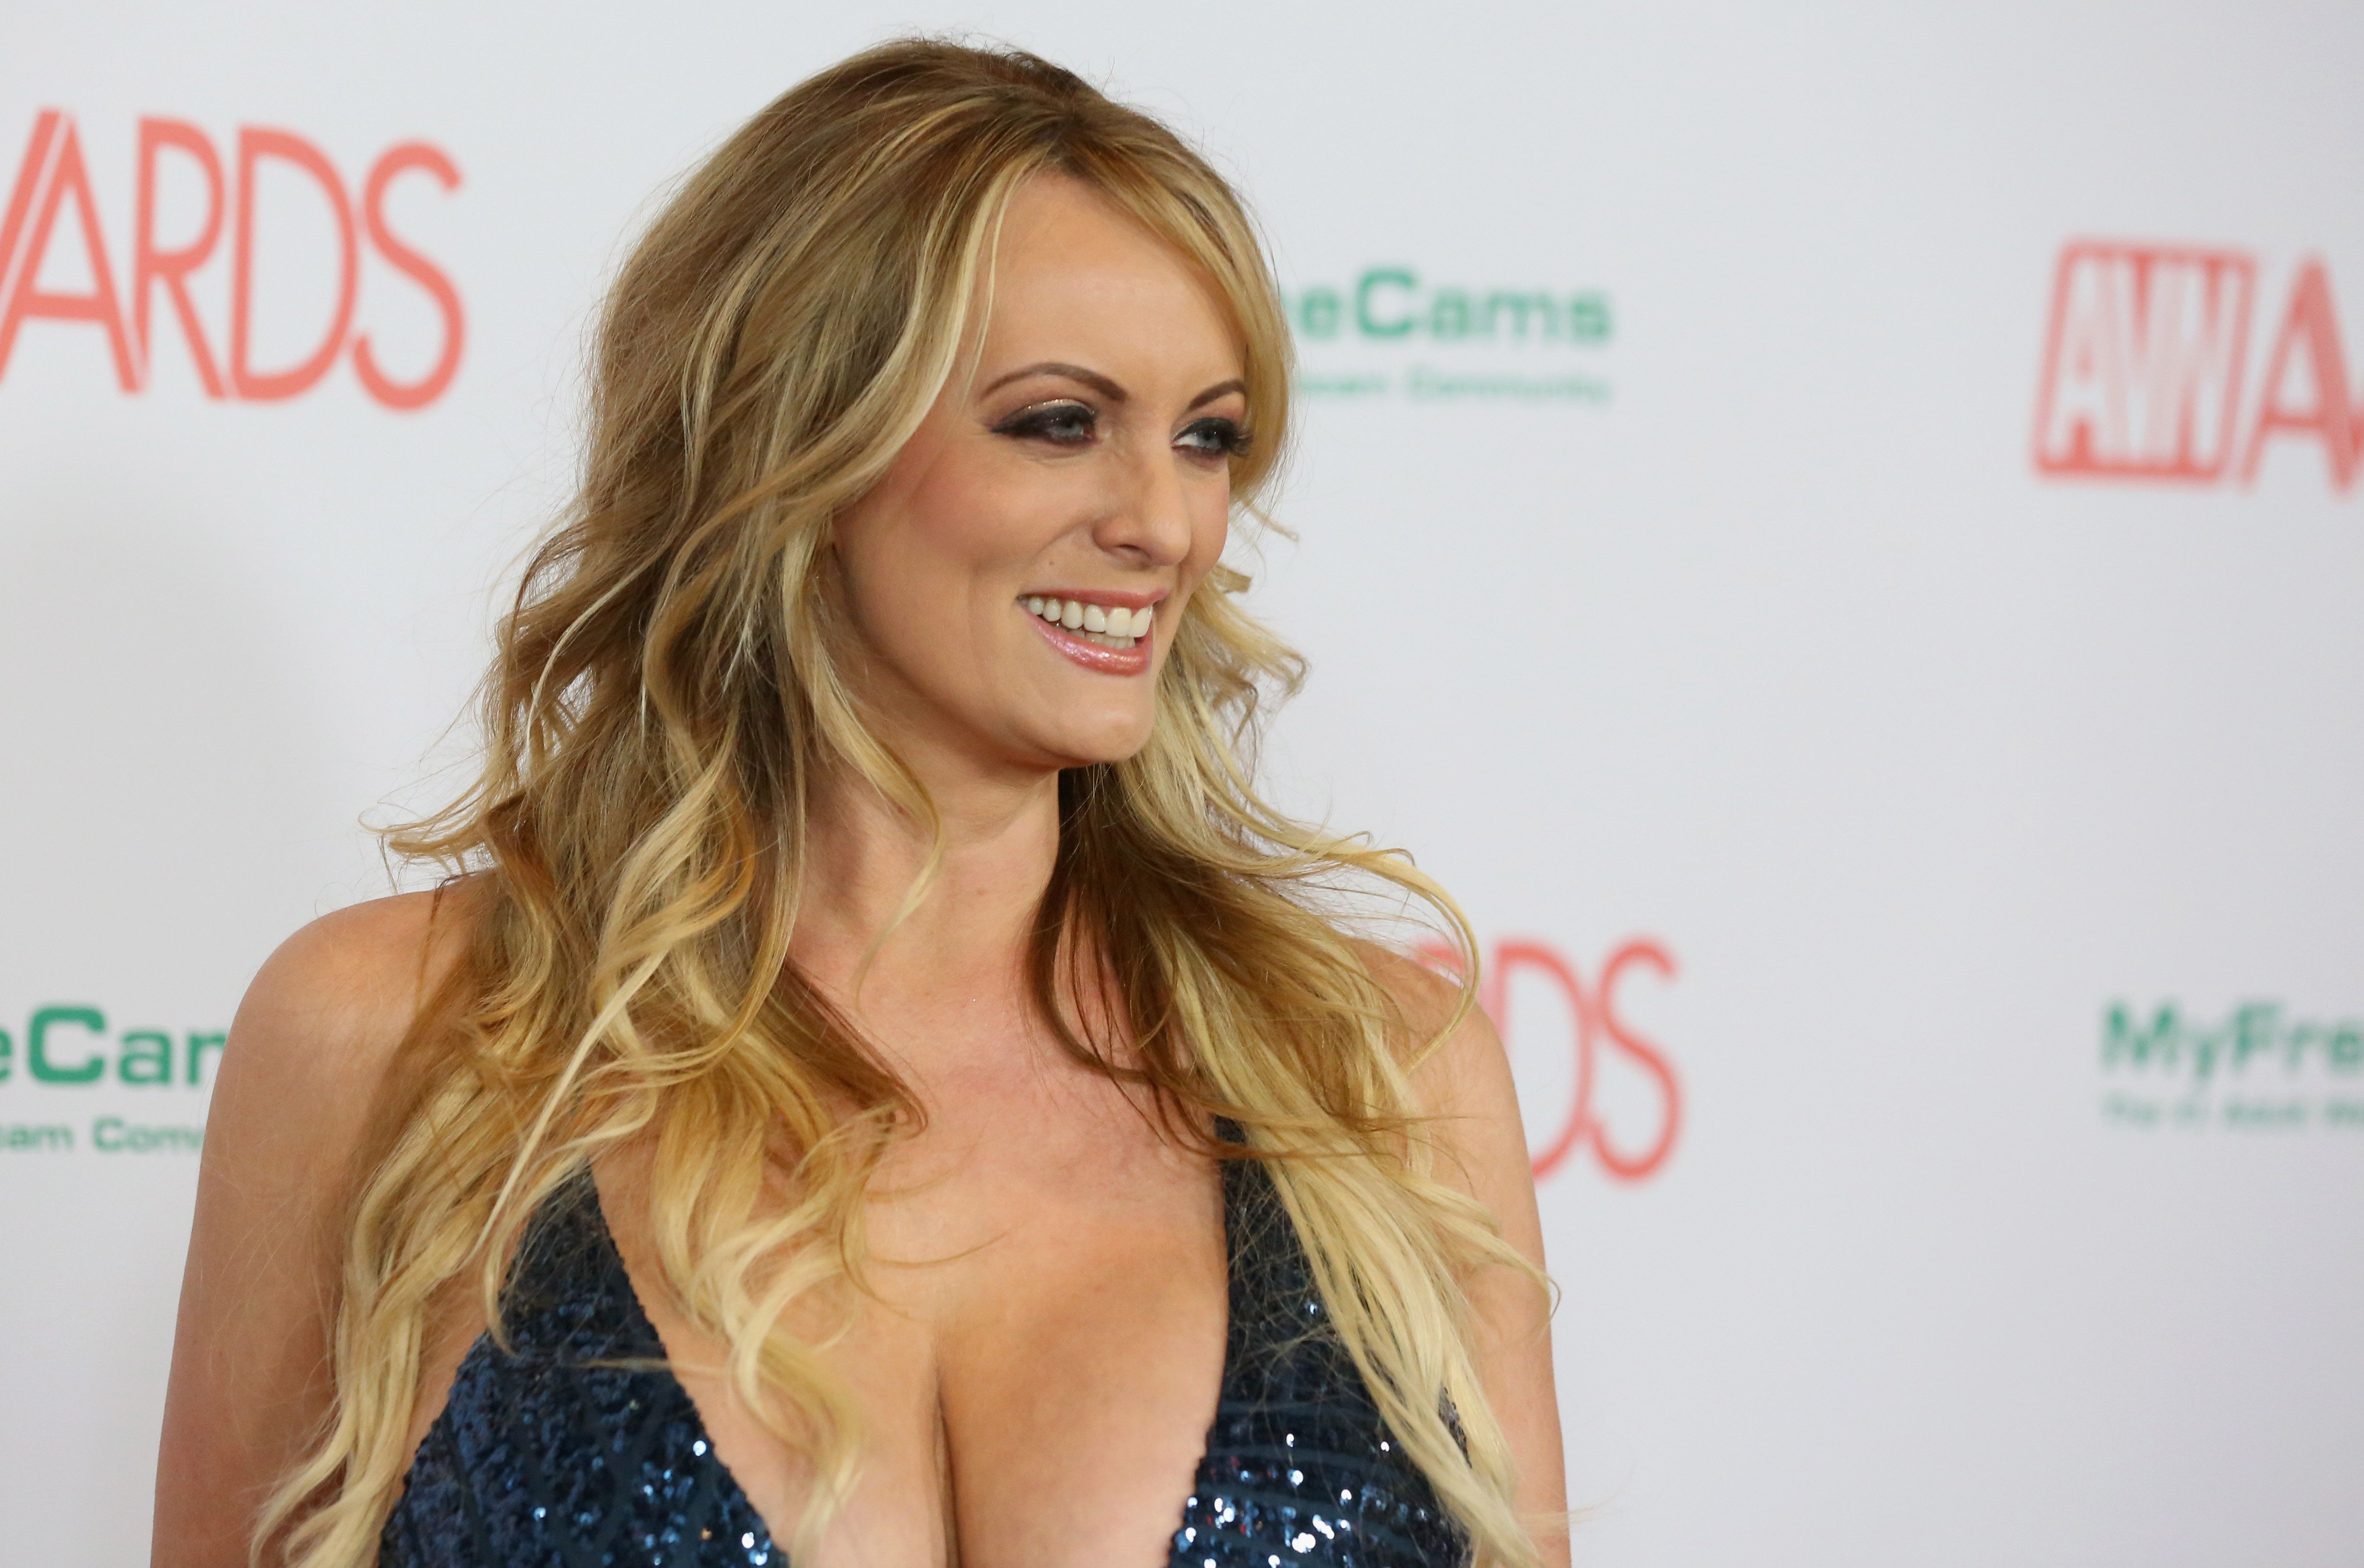 Stephanie Clifford, aka Stormy Daniels, filed a lawsuit on Tuesday against President Donald Trump.